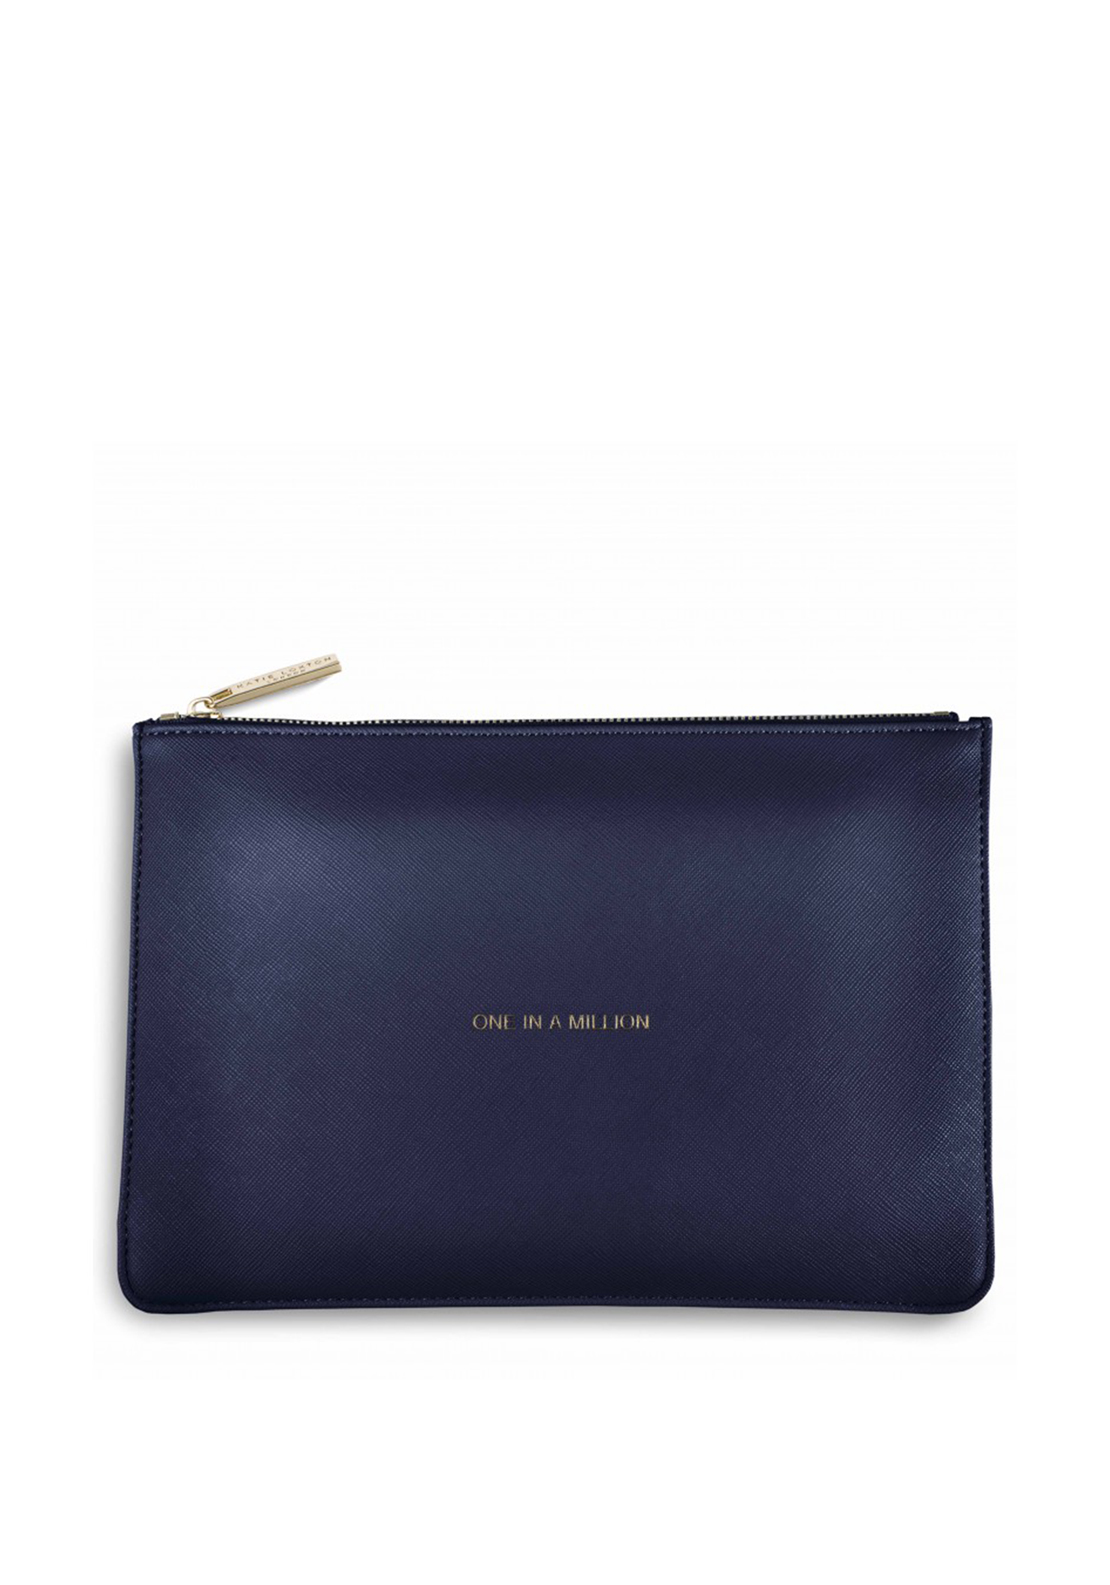 Katie Loxton One In A Million Pouch Bag, Navy